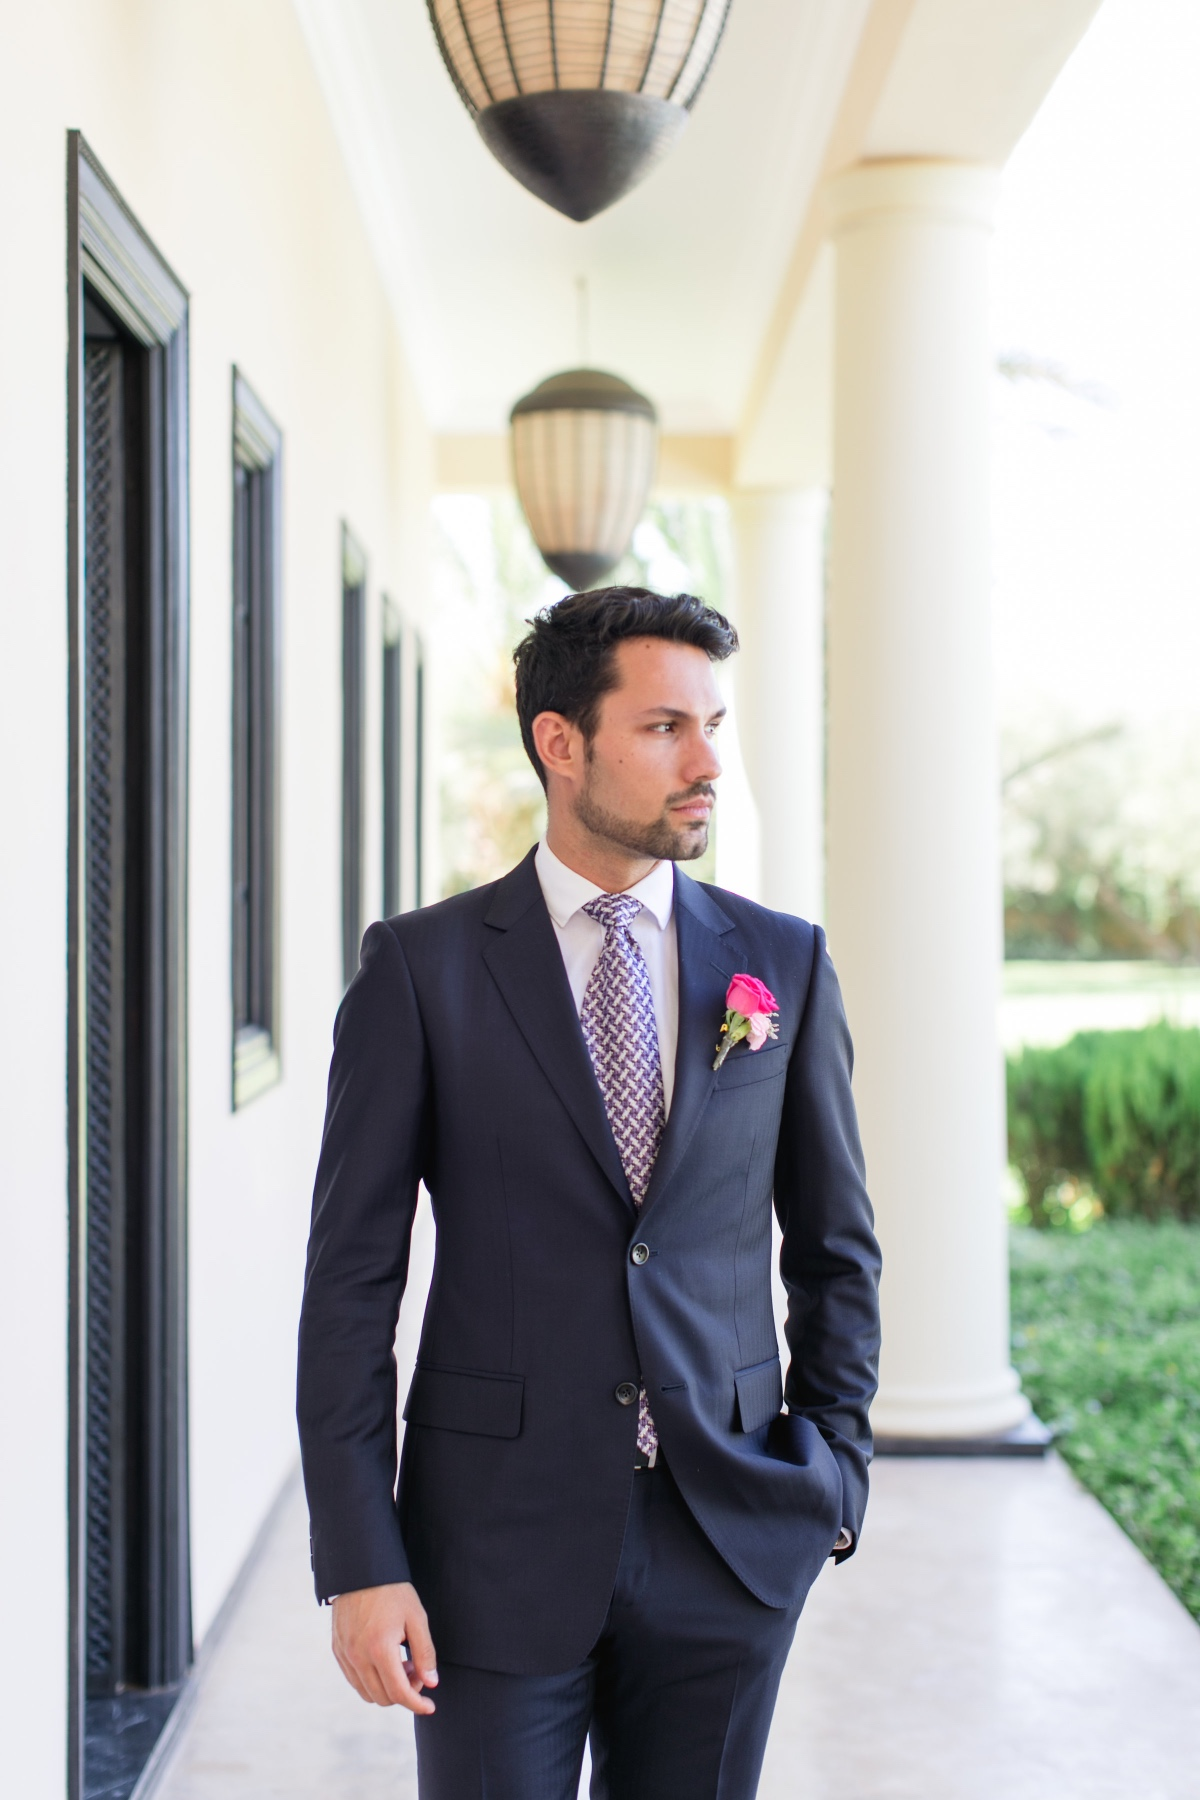 groom in navy suit and patterned tie